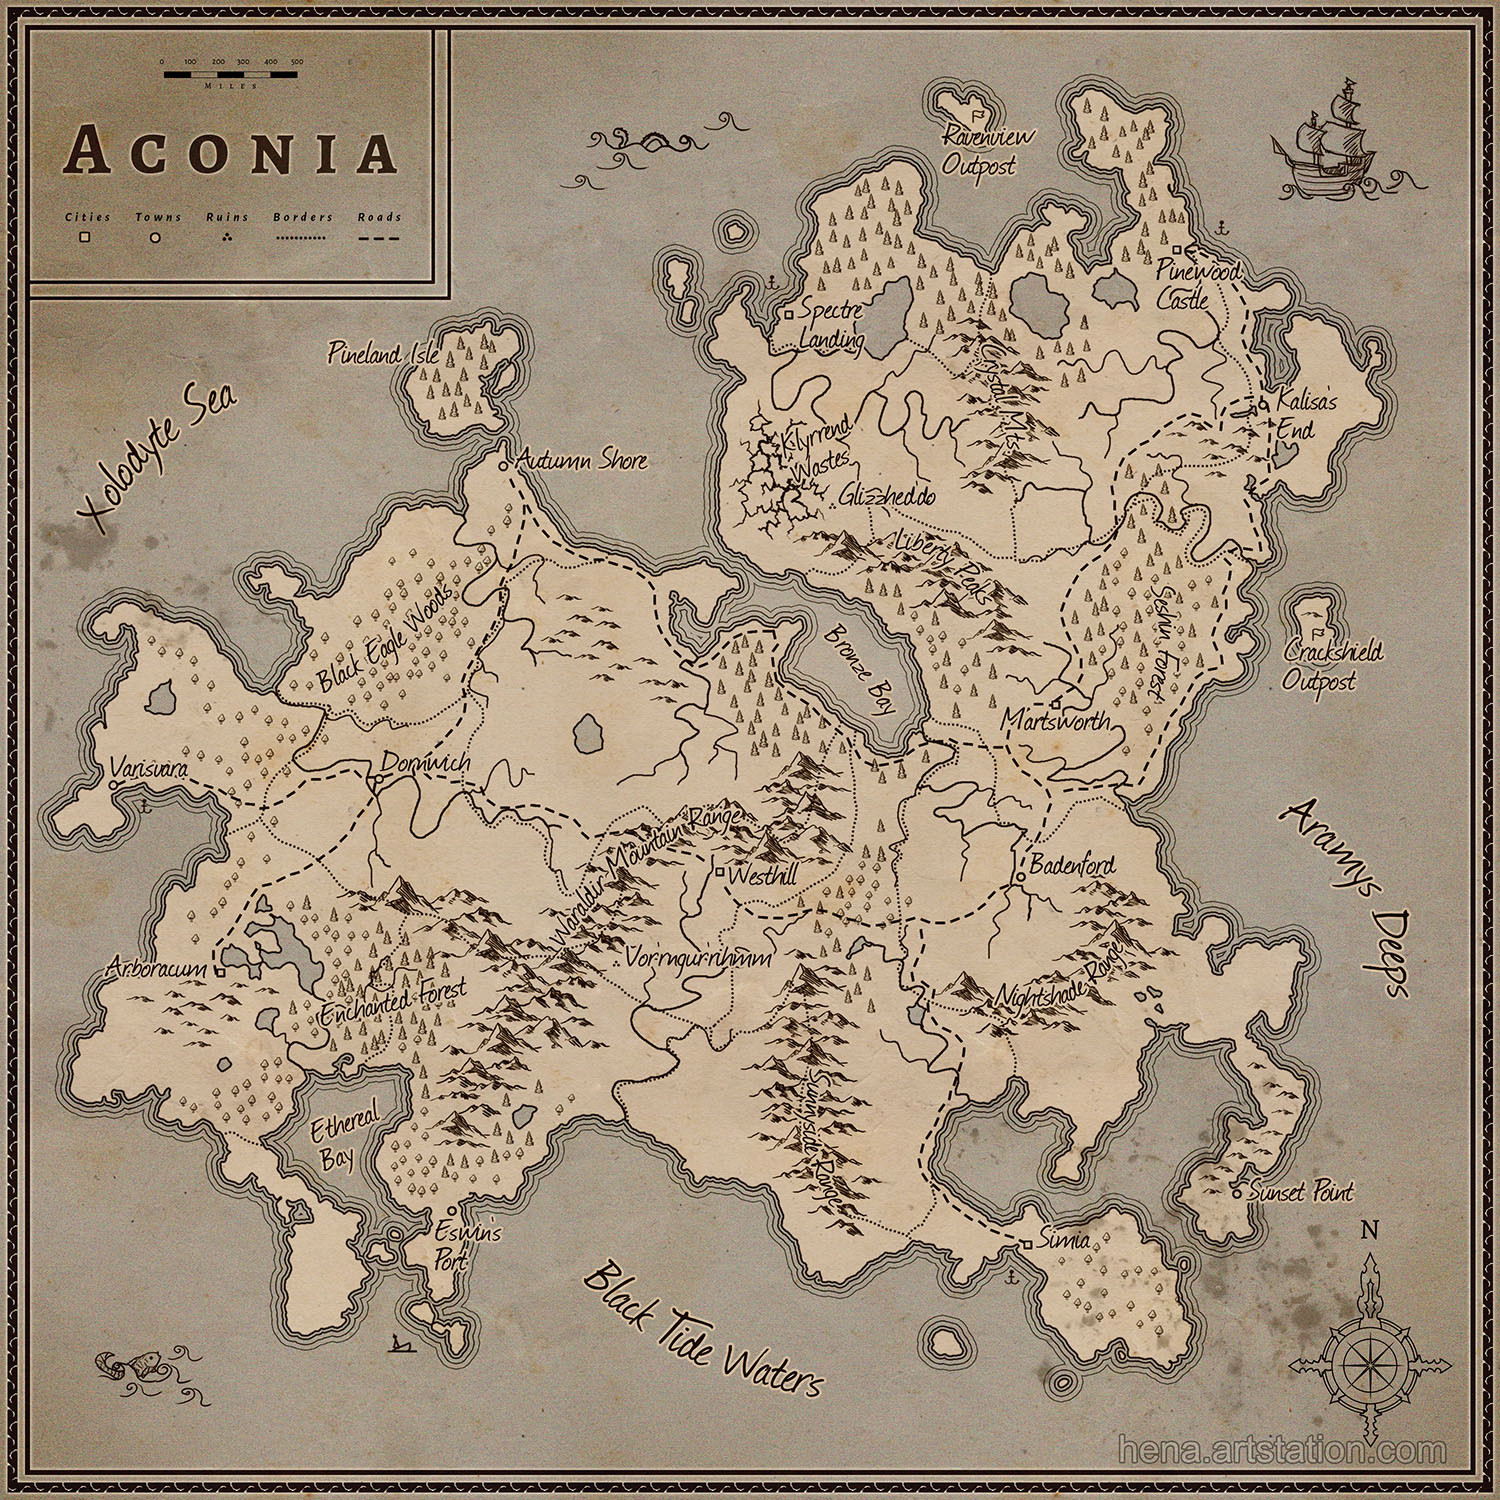 Karin wittig map aconia as